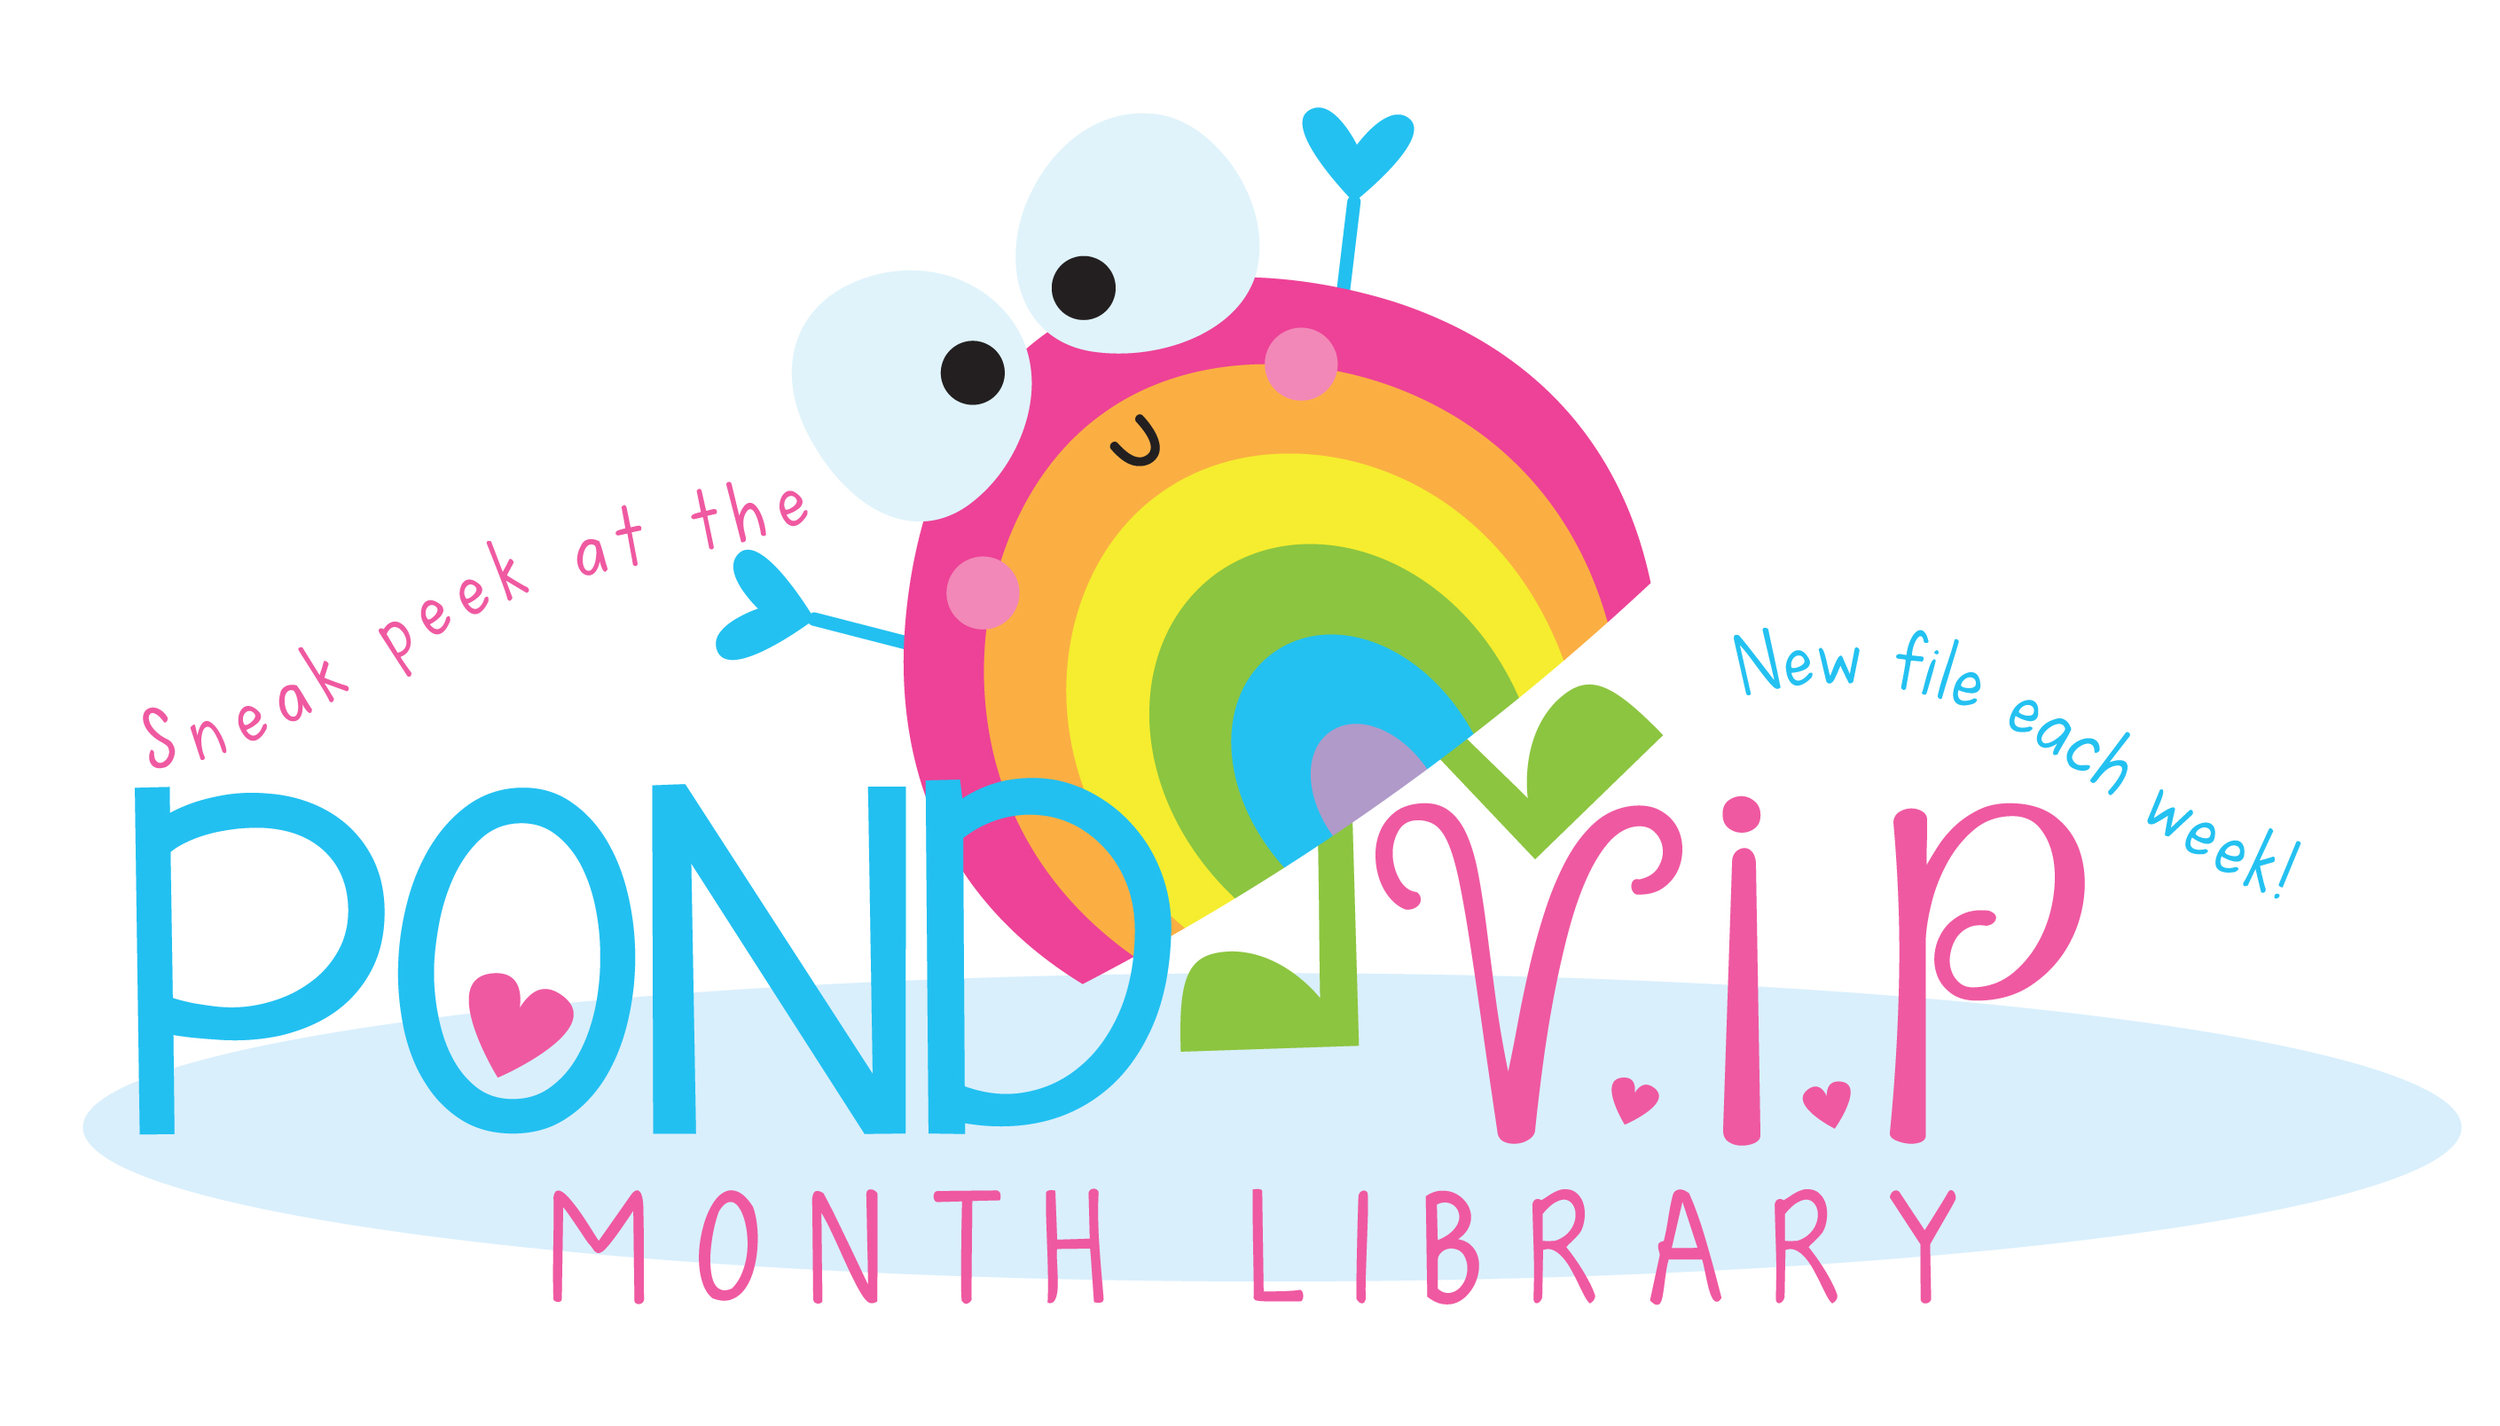 Here is a peek at the current VIP Month Library. You also get access to an exclusive and bonus library too!